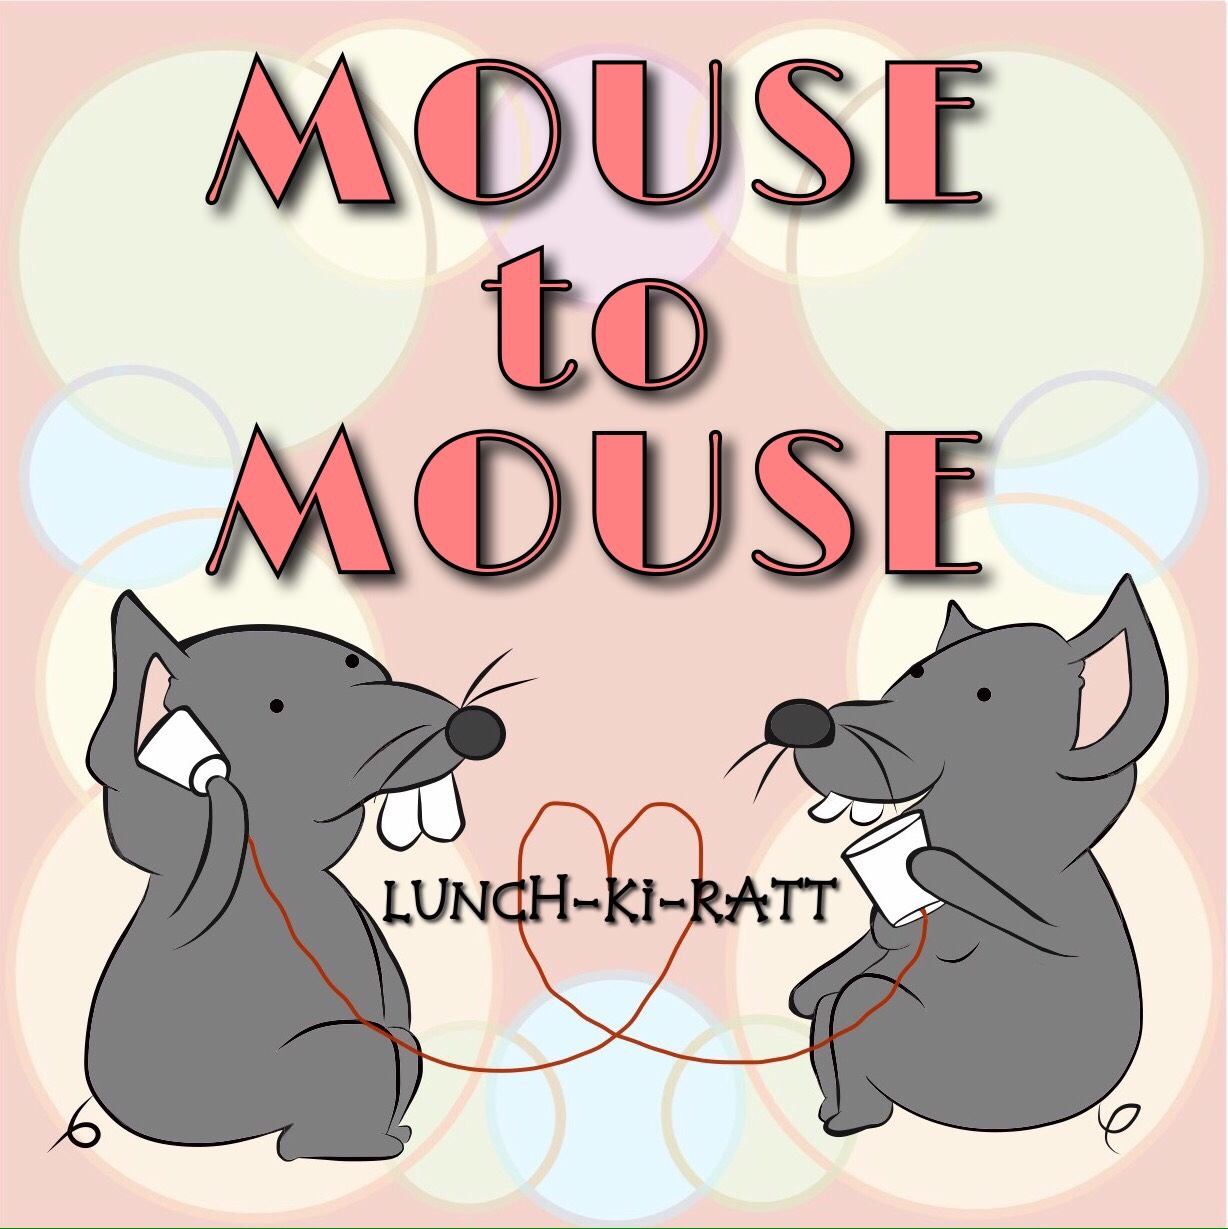 MOUSE to MOUSE